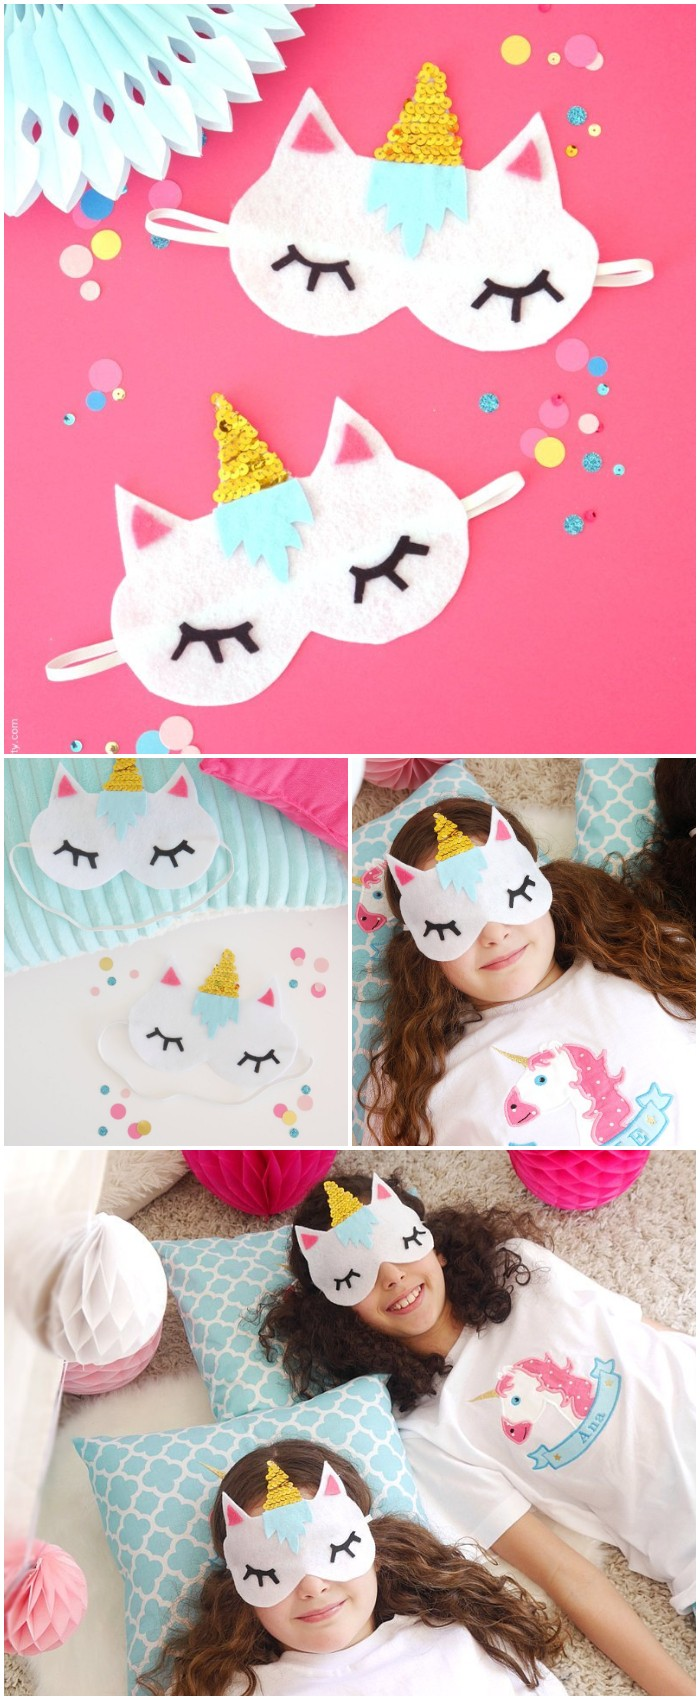 Sleeping Masks With Free Template